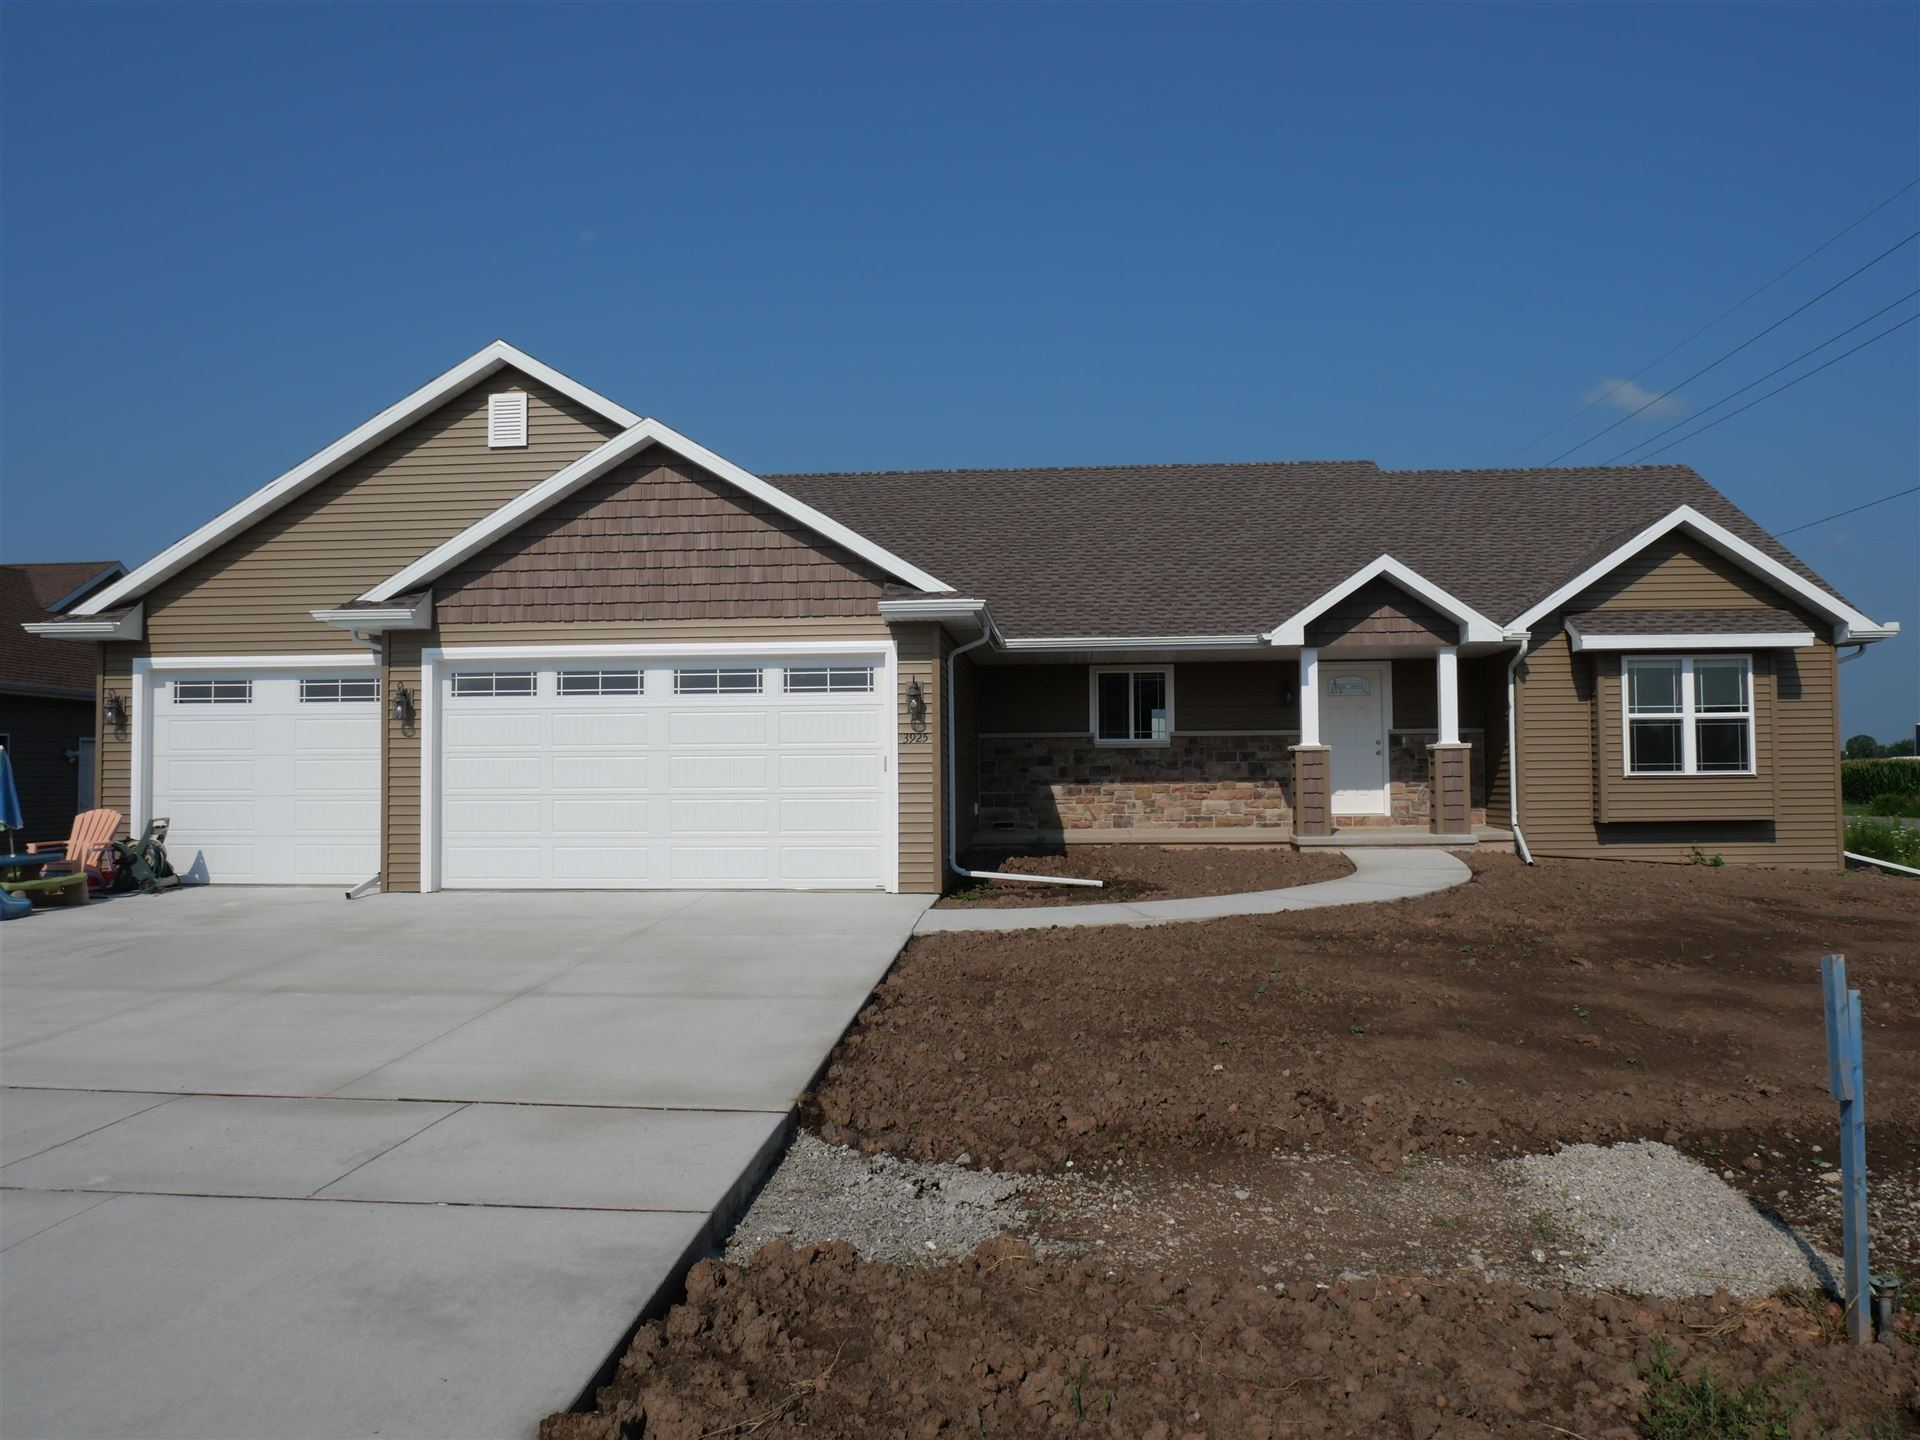 Photo of 3337 E RUBY RED Drive, APPLETON, WI 54913 (MLS # 50247856)